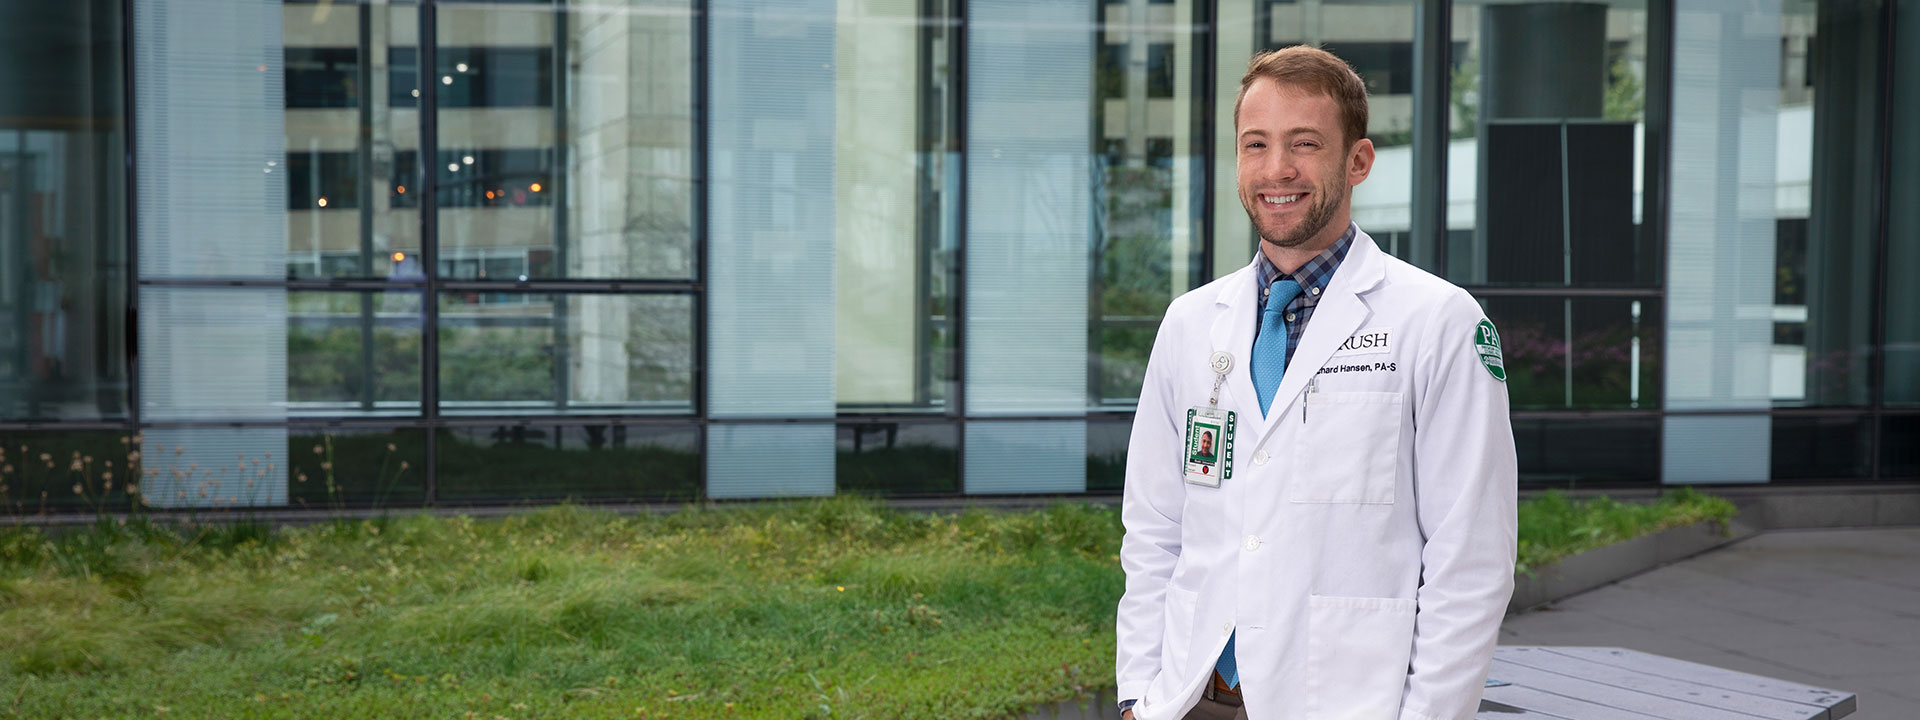 Physician assistant student Richard Hansen, College of Health Sciences